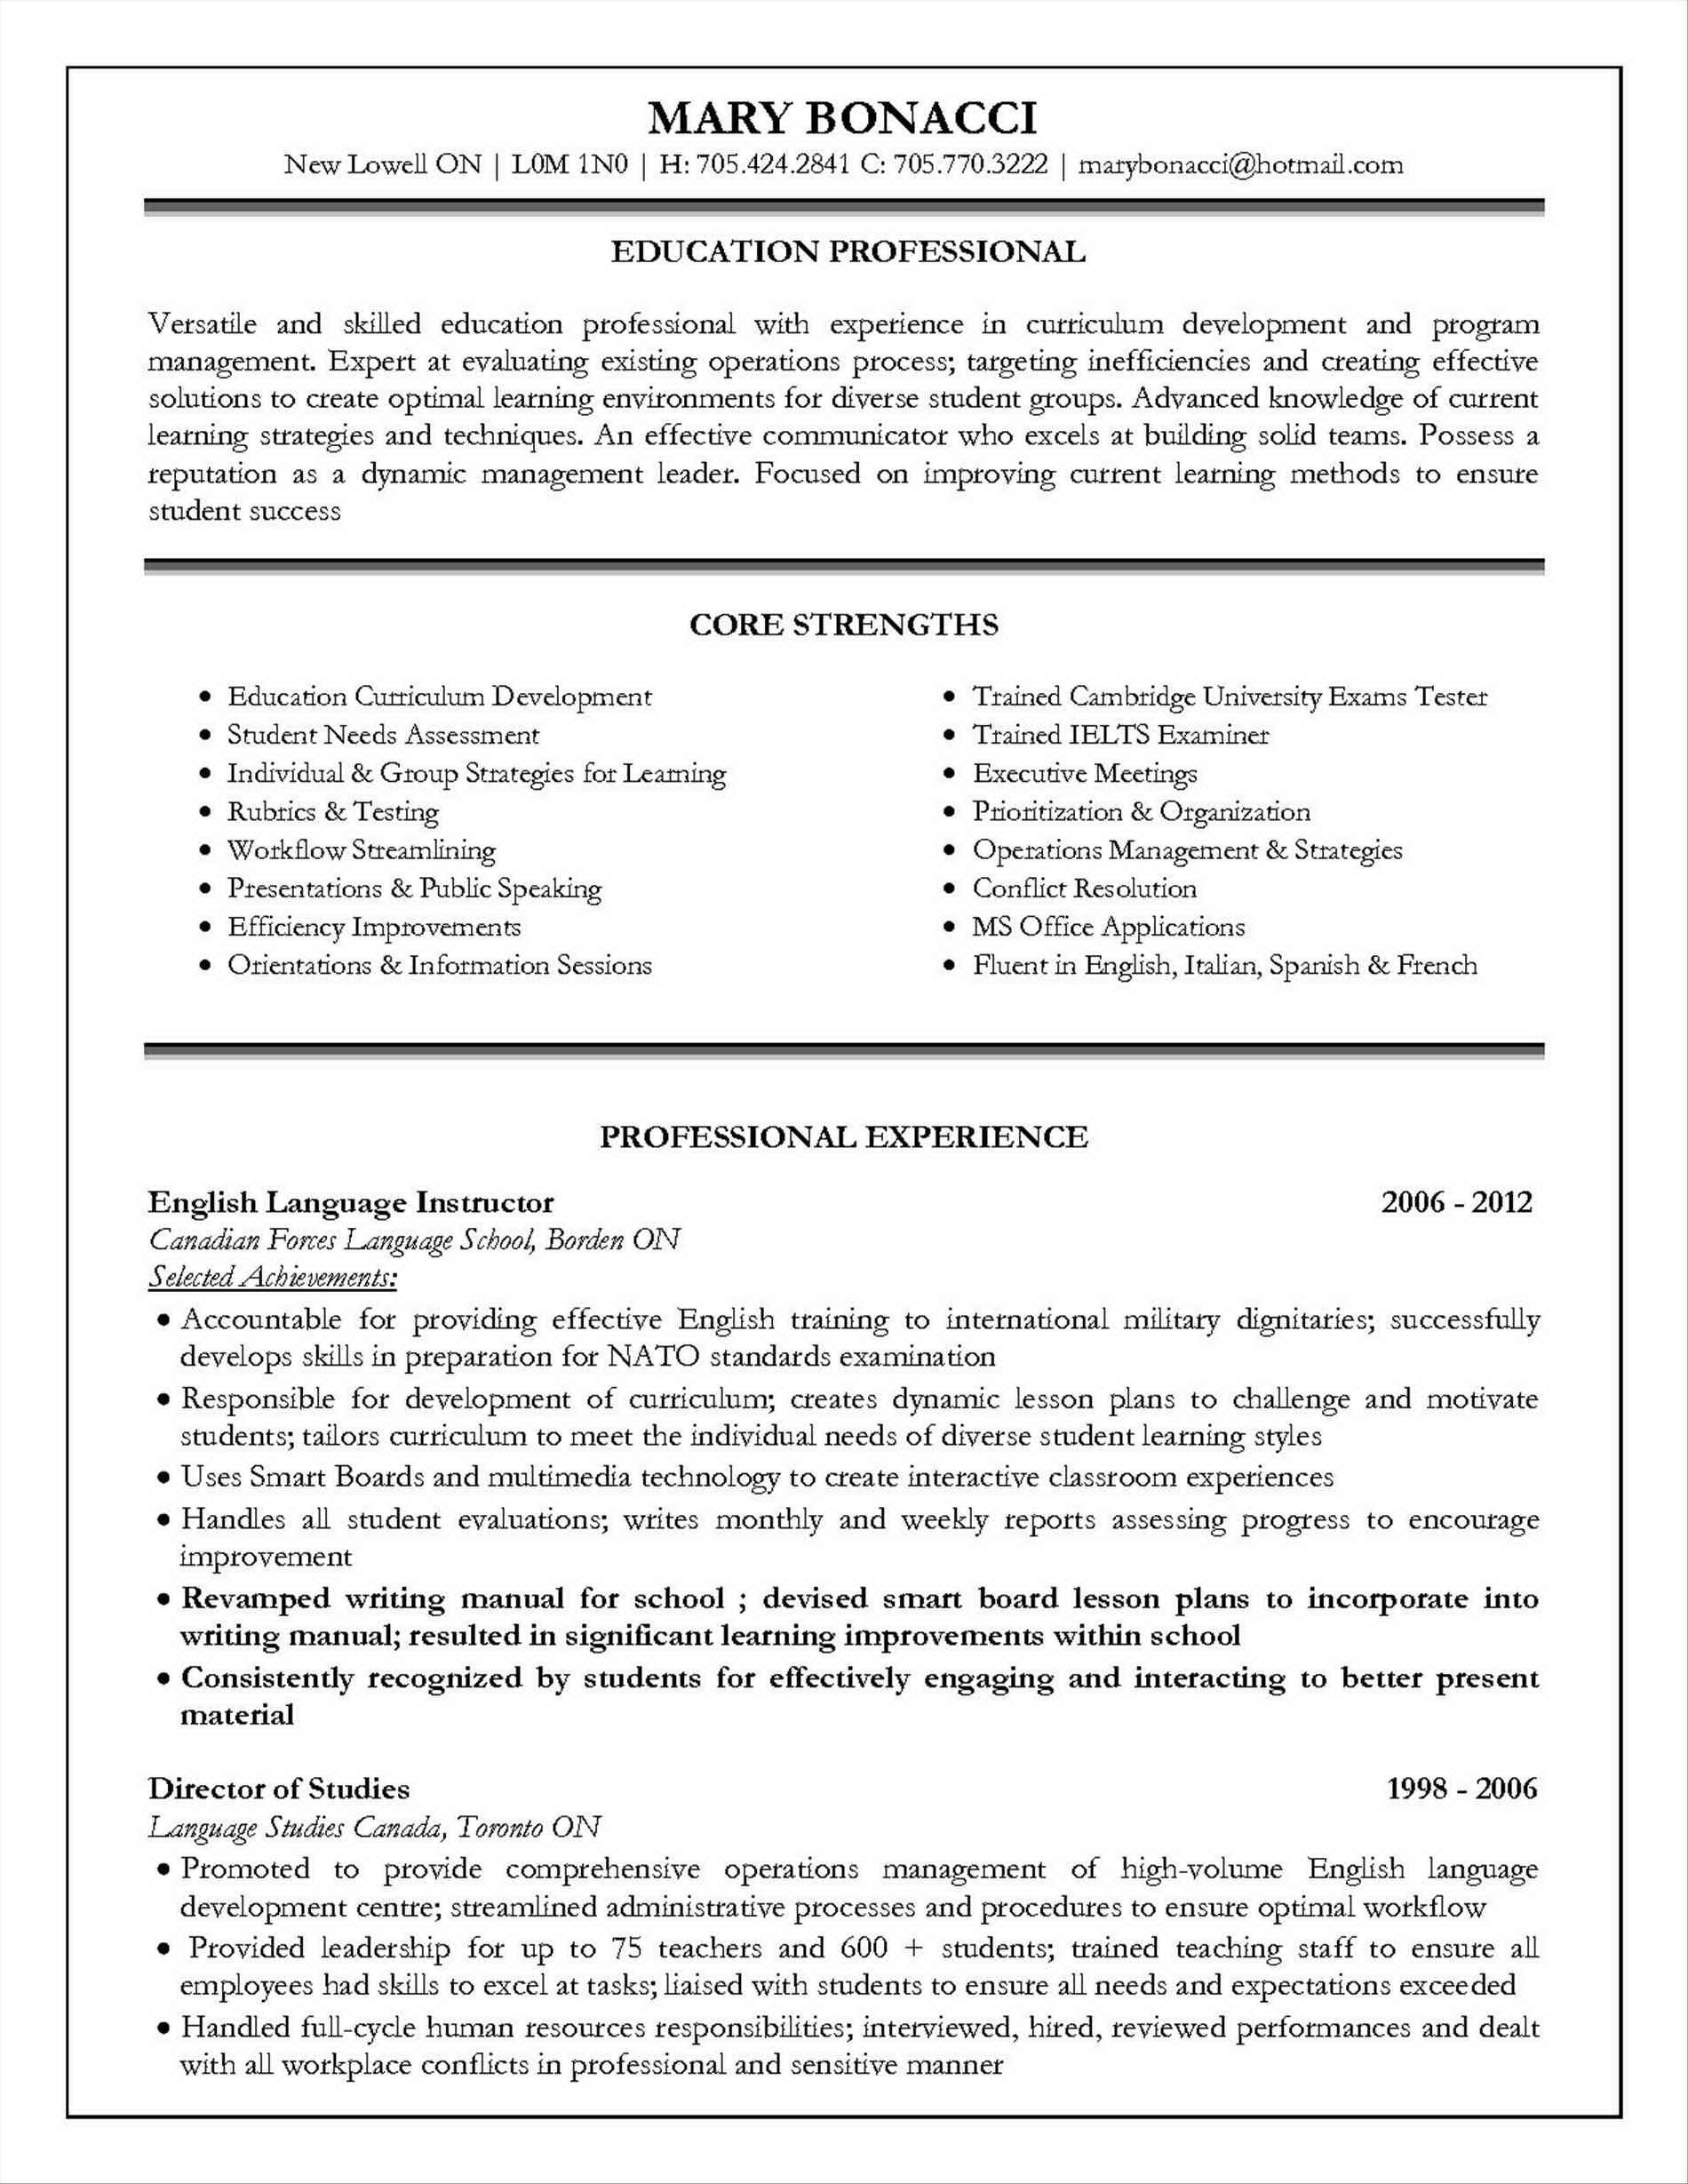 Sample Resume For Jobs In Usa